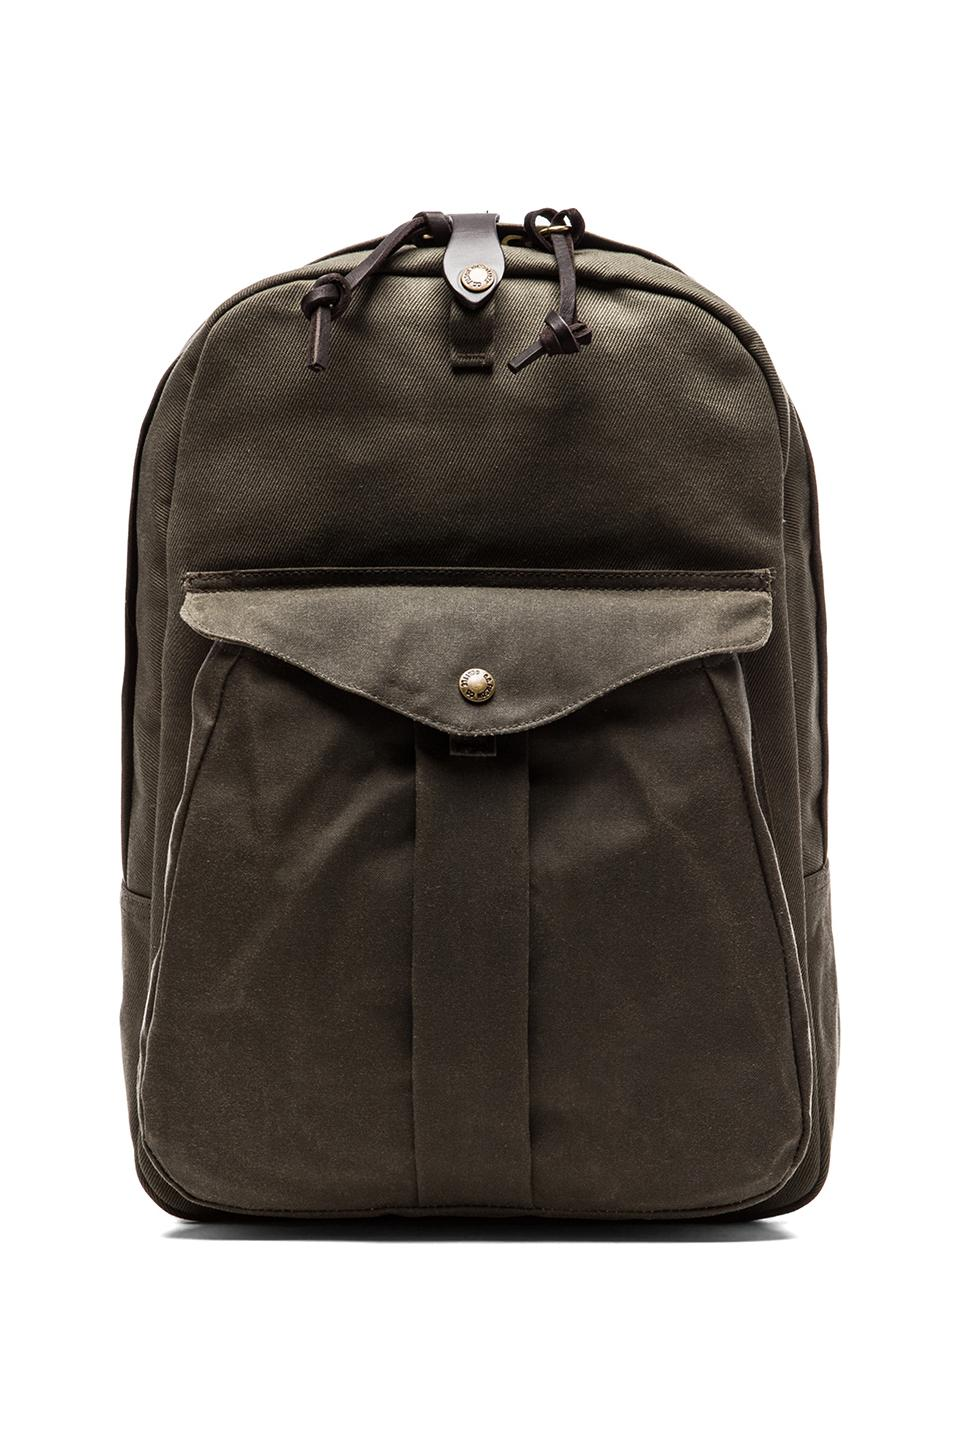 Filson Twill Backpack in Otter Green/ Otter Green